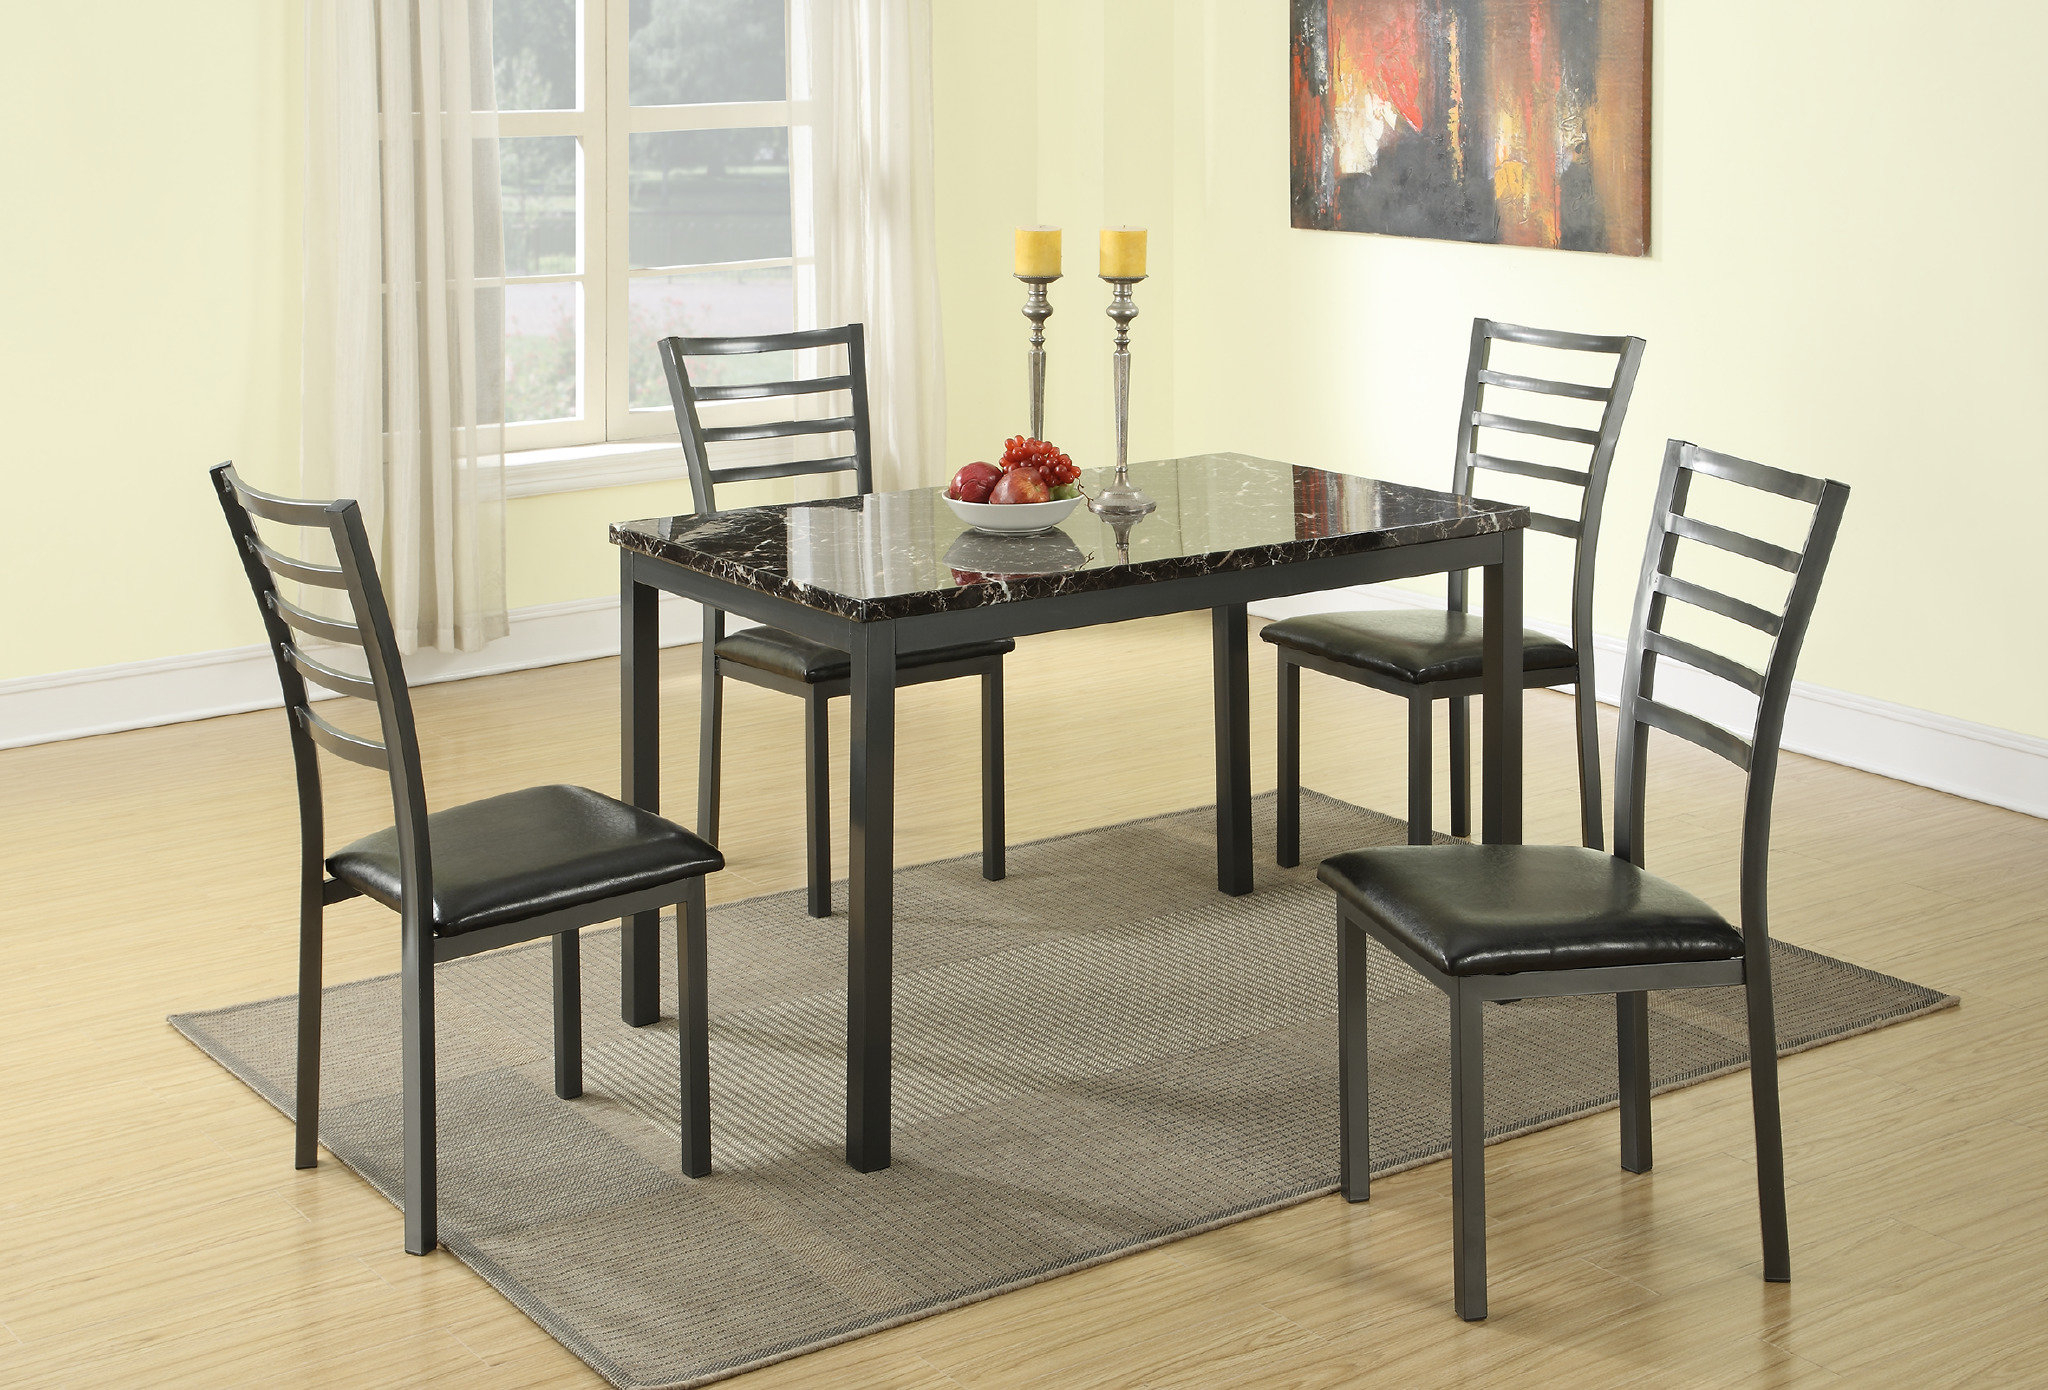 Most Popular Taulbee 5 Piece Dining Sets With Regard To Caenas 5 Piece Dining Set (View 9 of 20)